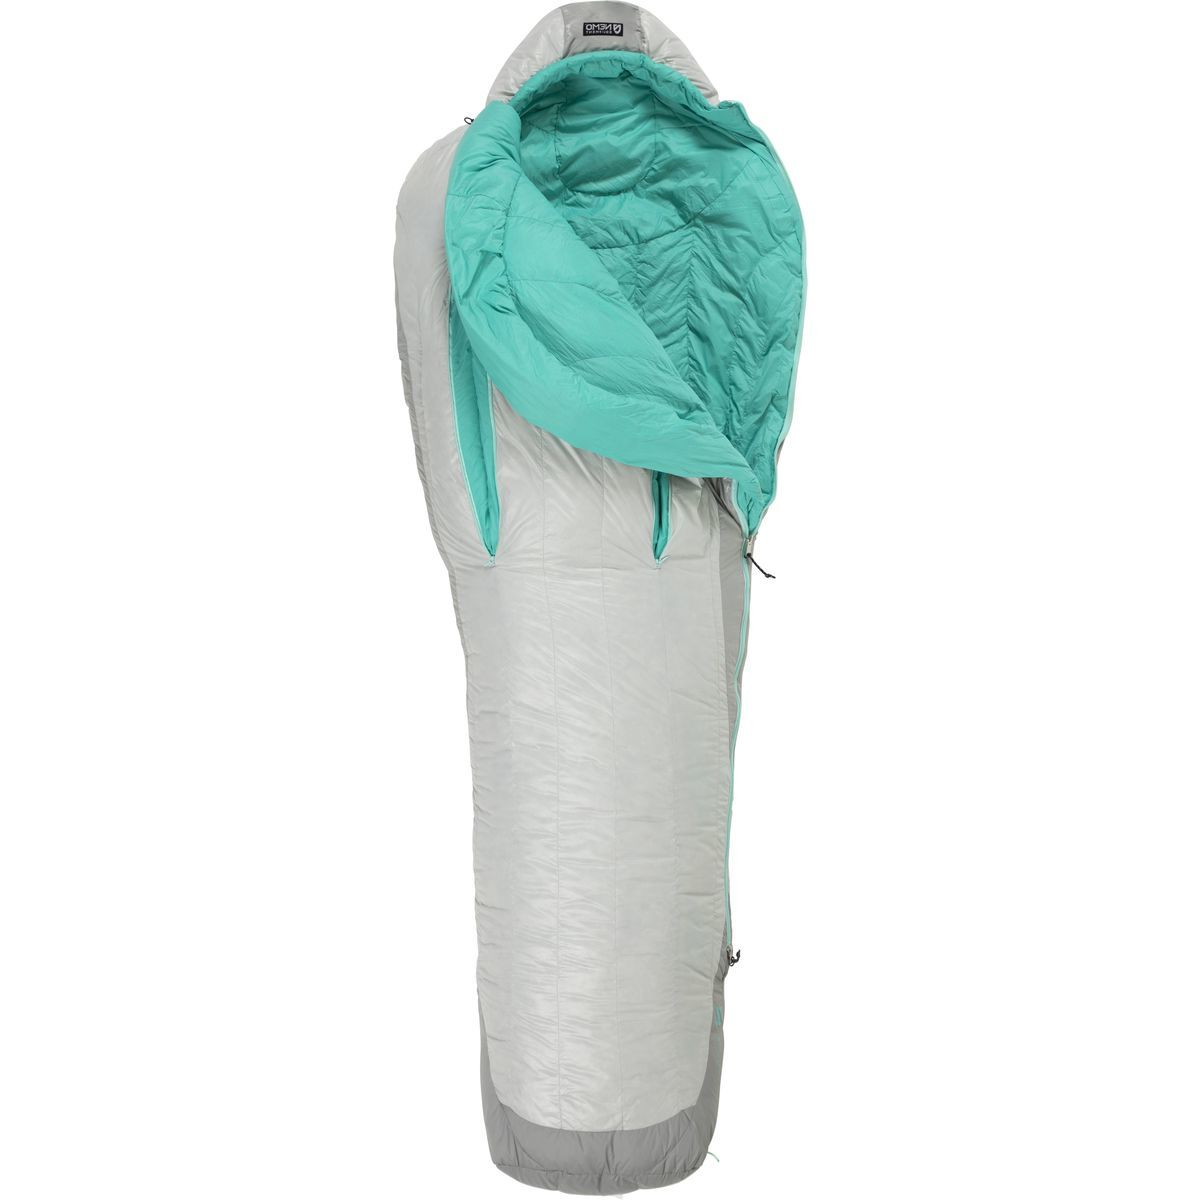 NEMO Equipment Inc. Aya 15 Sleeping Bag: 15 Degree Down - Women's